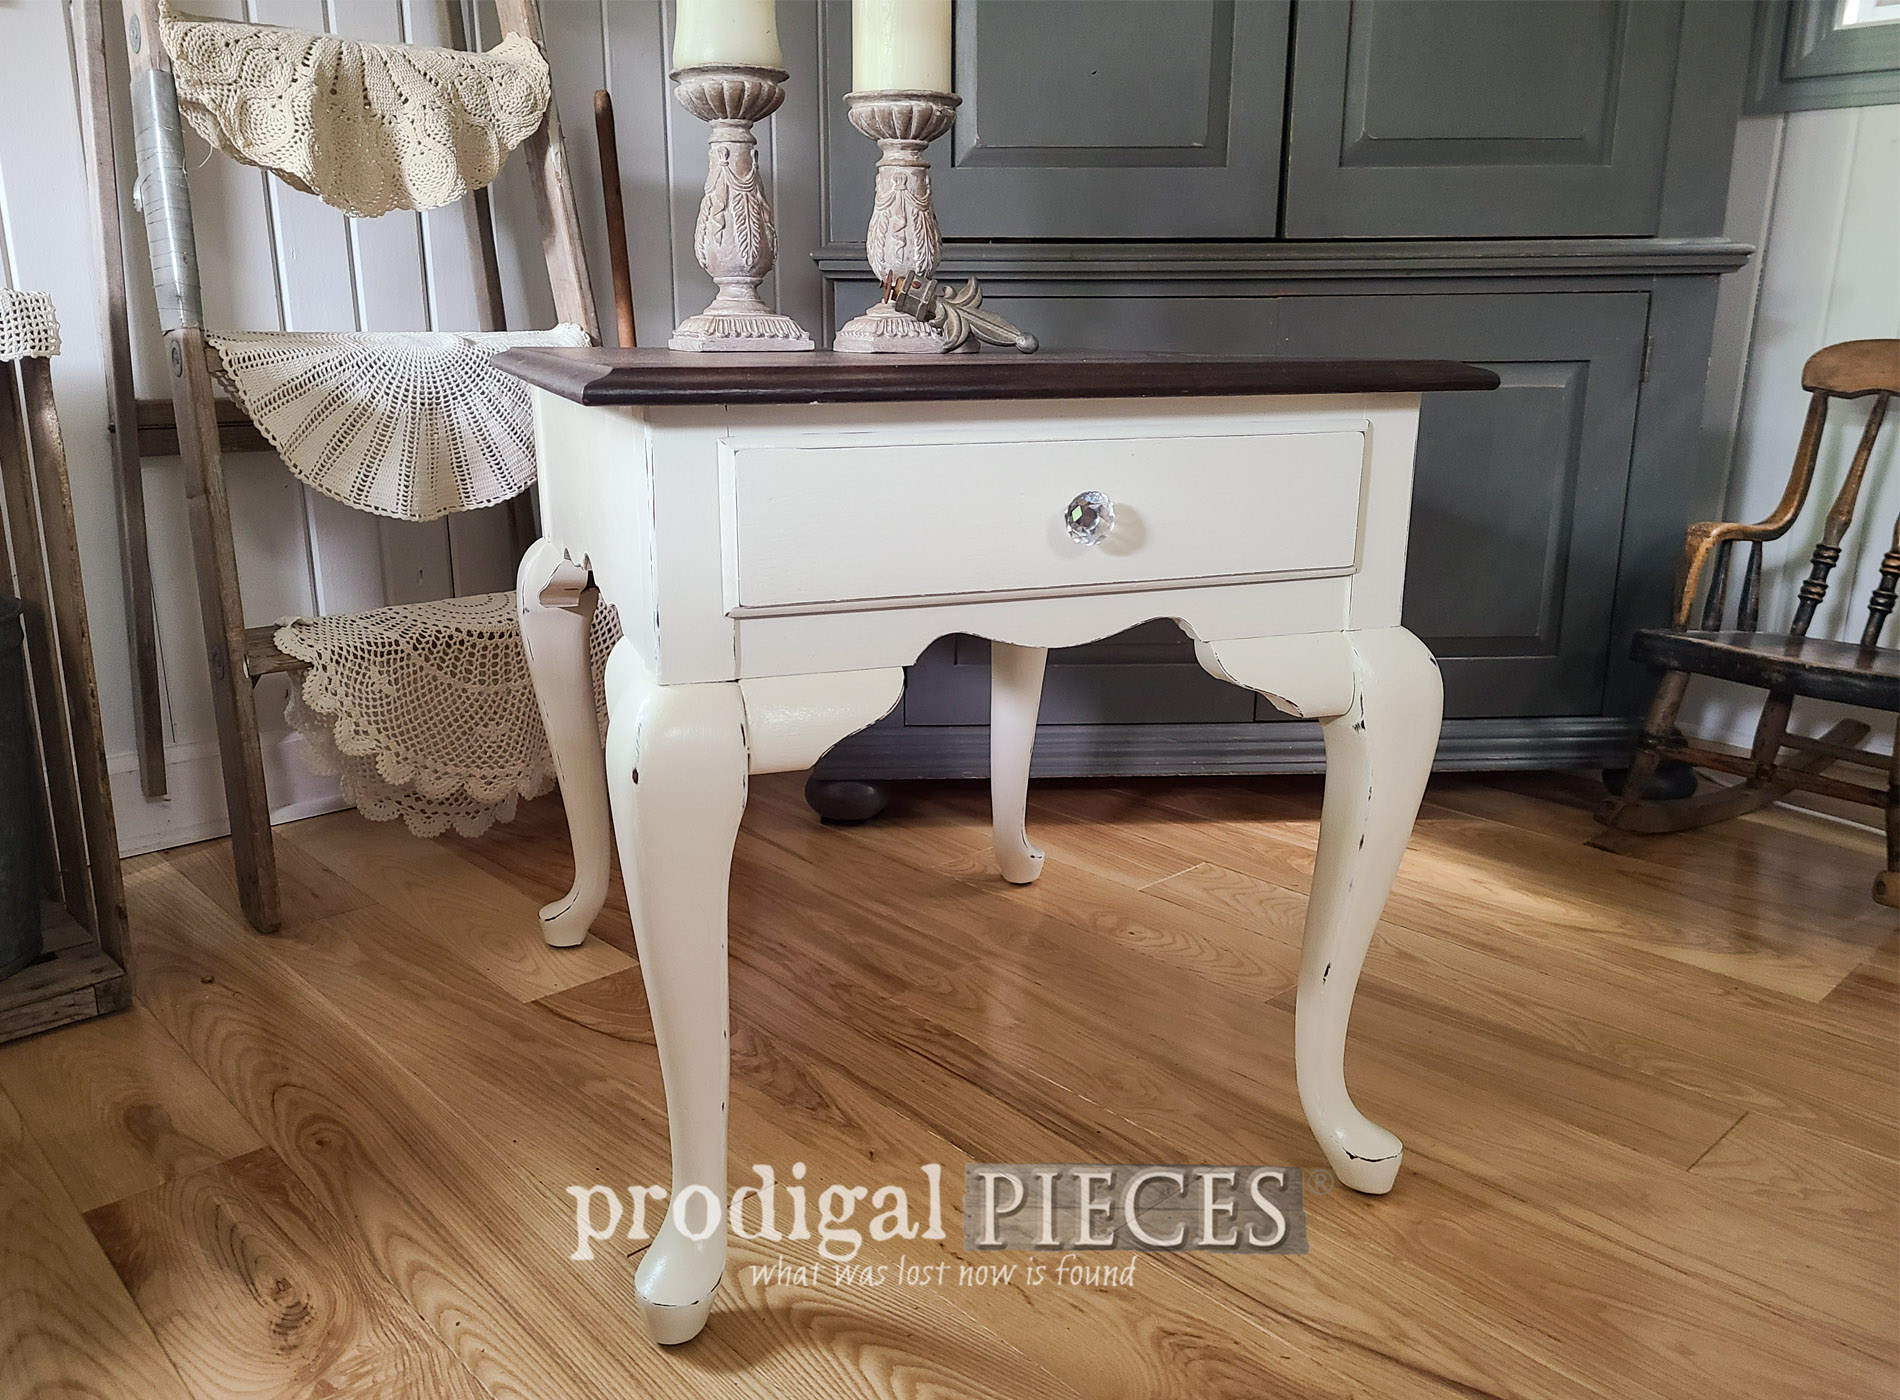 Featured Vintage Queen Anne Table Refinished by Prodigal Pieces | prodigalpieces.com #prodigalpieces #furniture #diy #home #homedecor